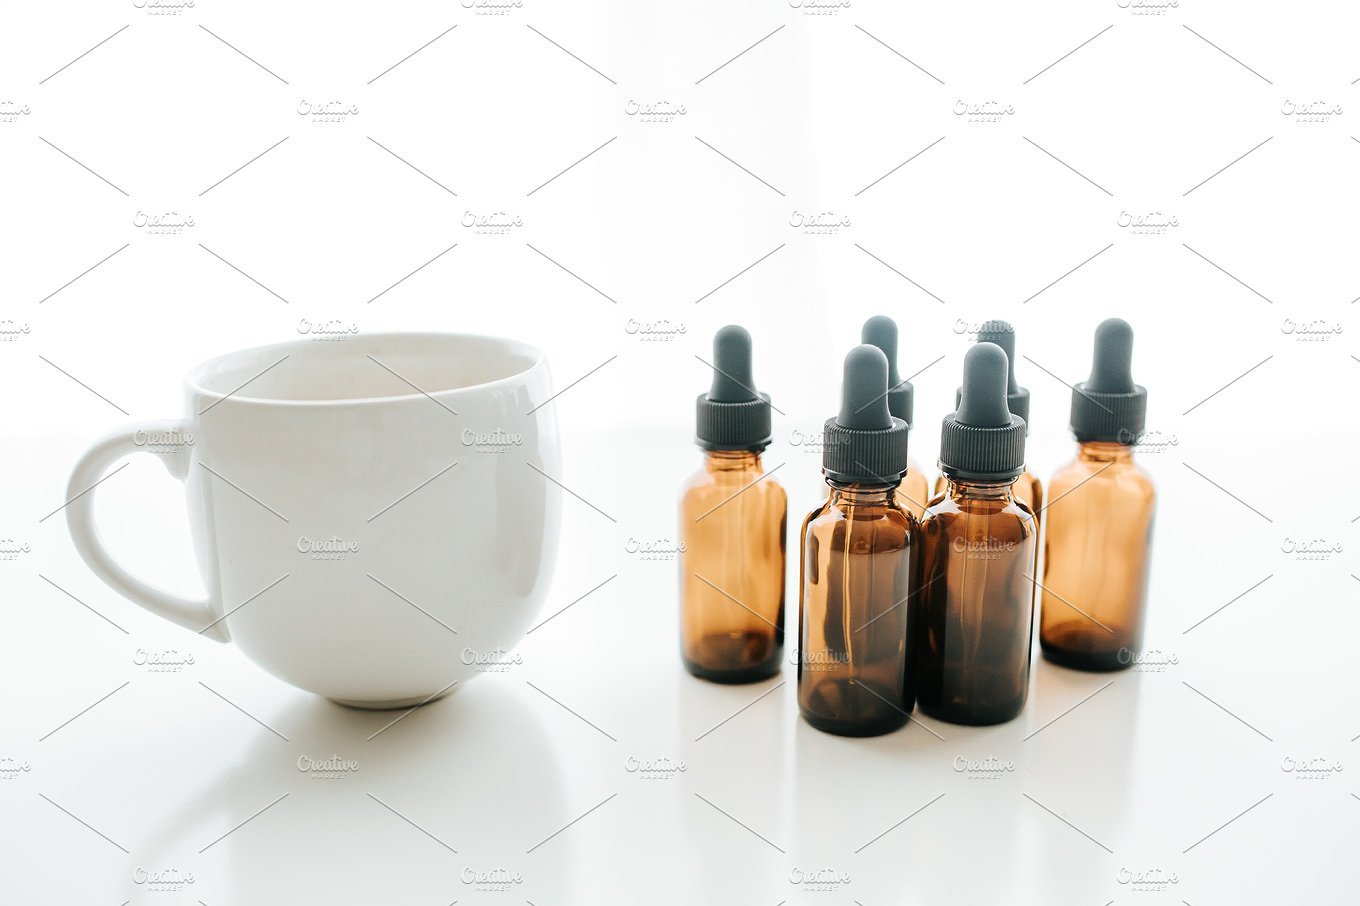 精油库存照片集合 Essential Oils Stock Photo Bundle插图(4)